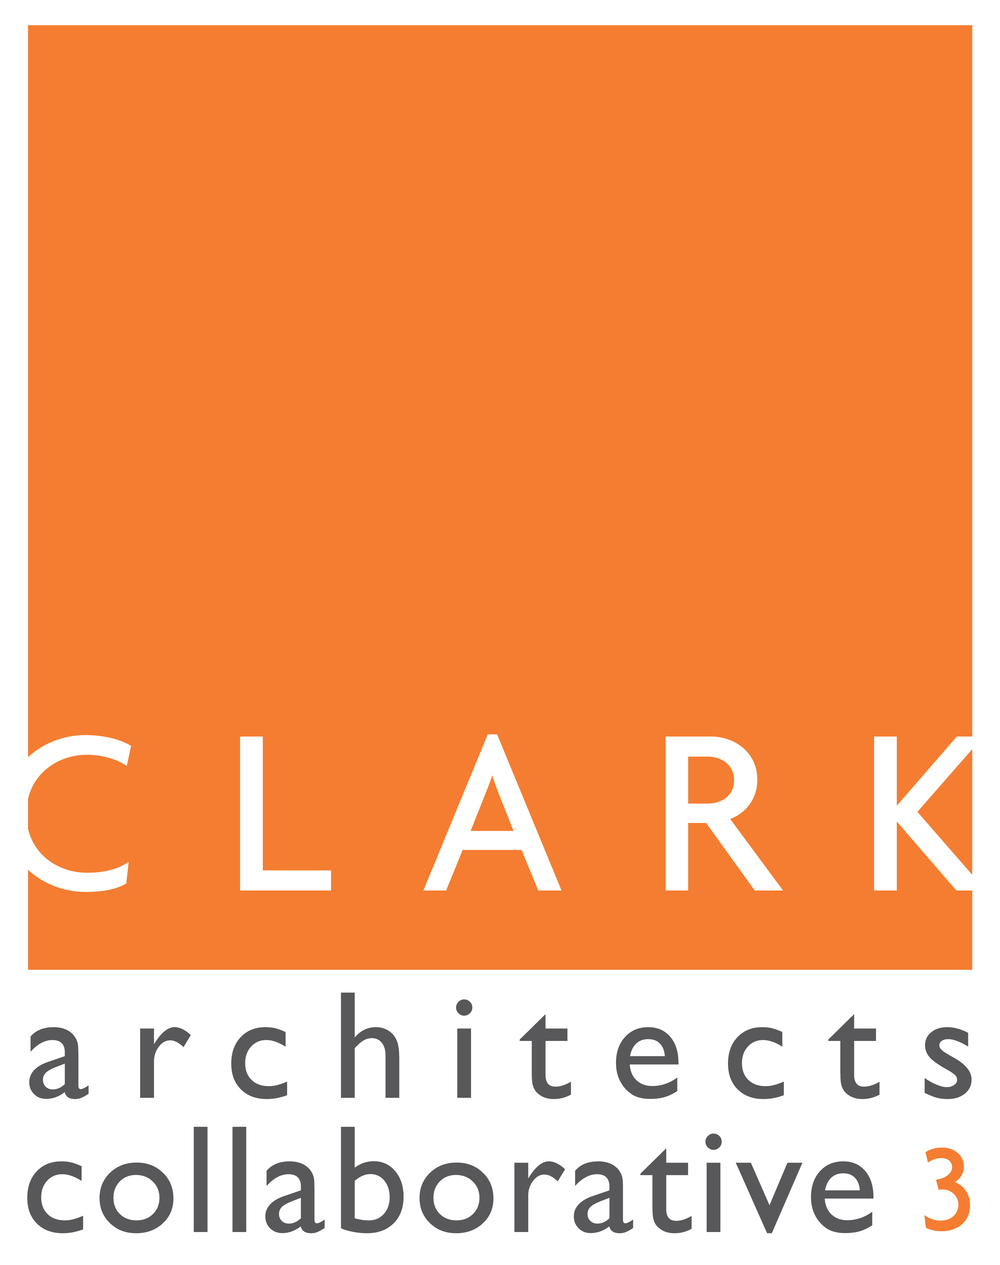 Clark Architects Collaborative 3